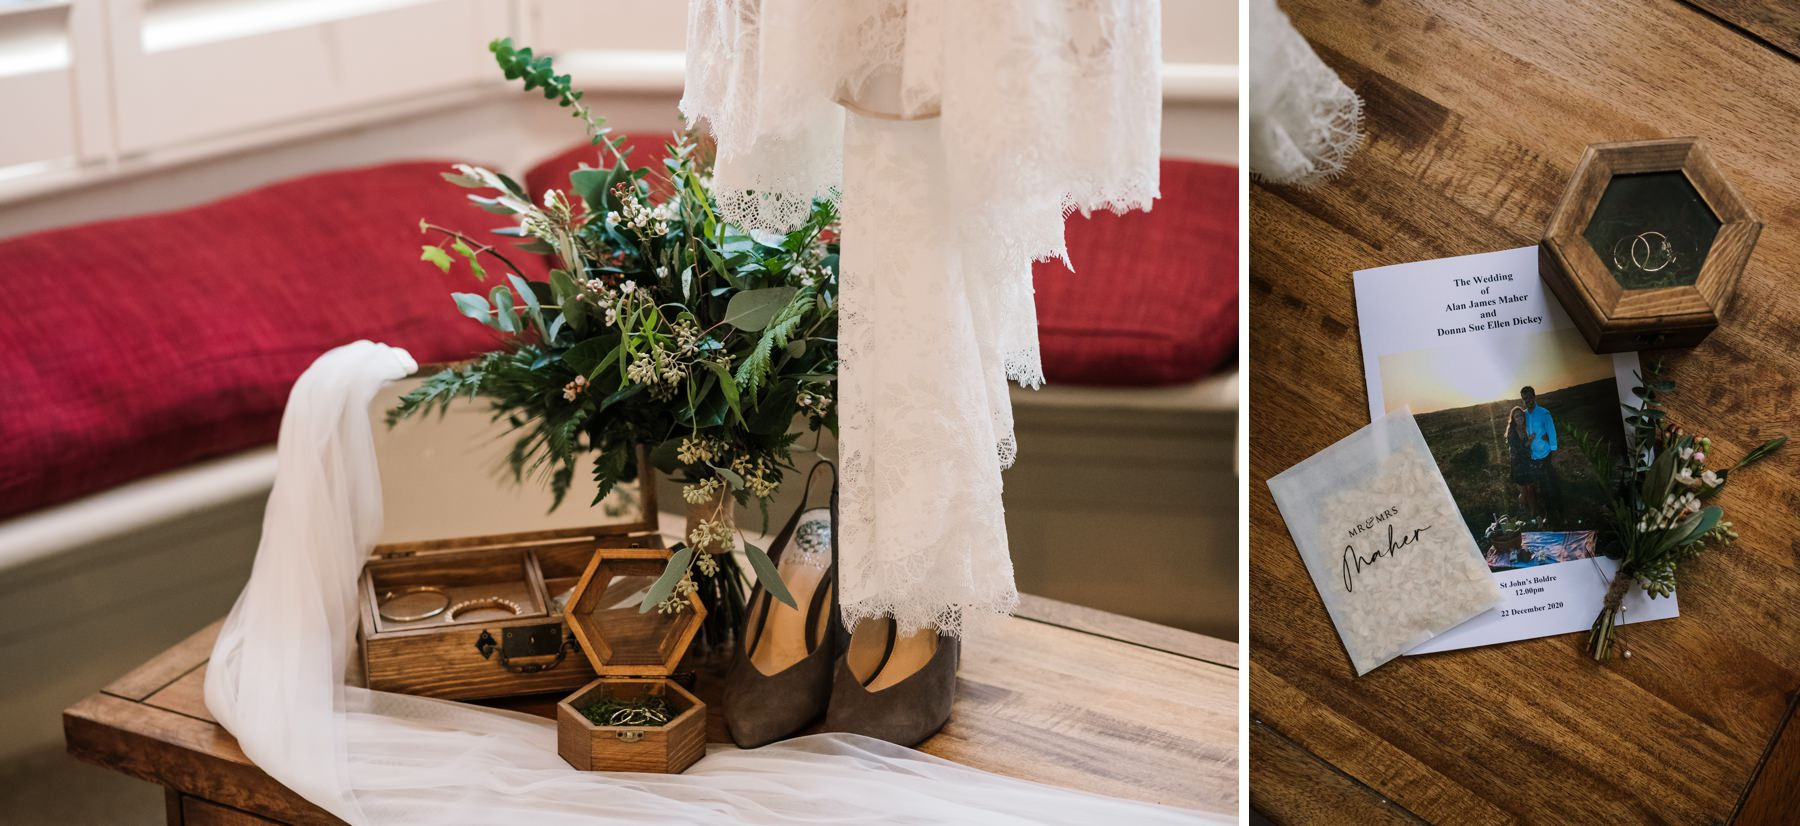 Bridal prep details at New Forest Micro Wedding